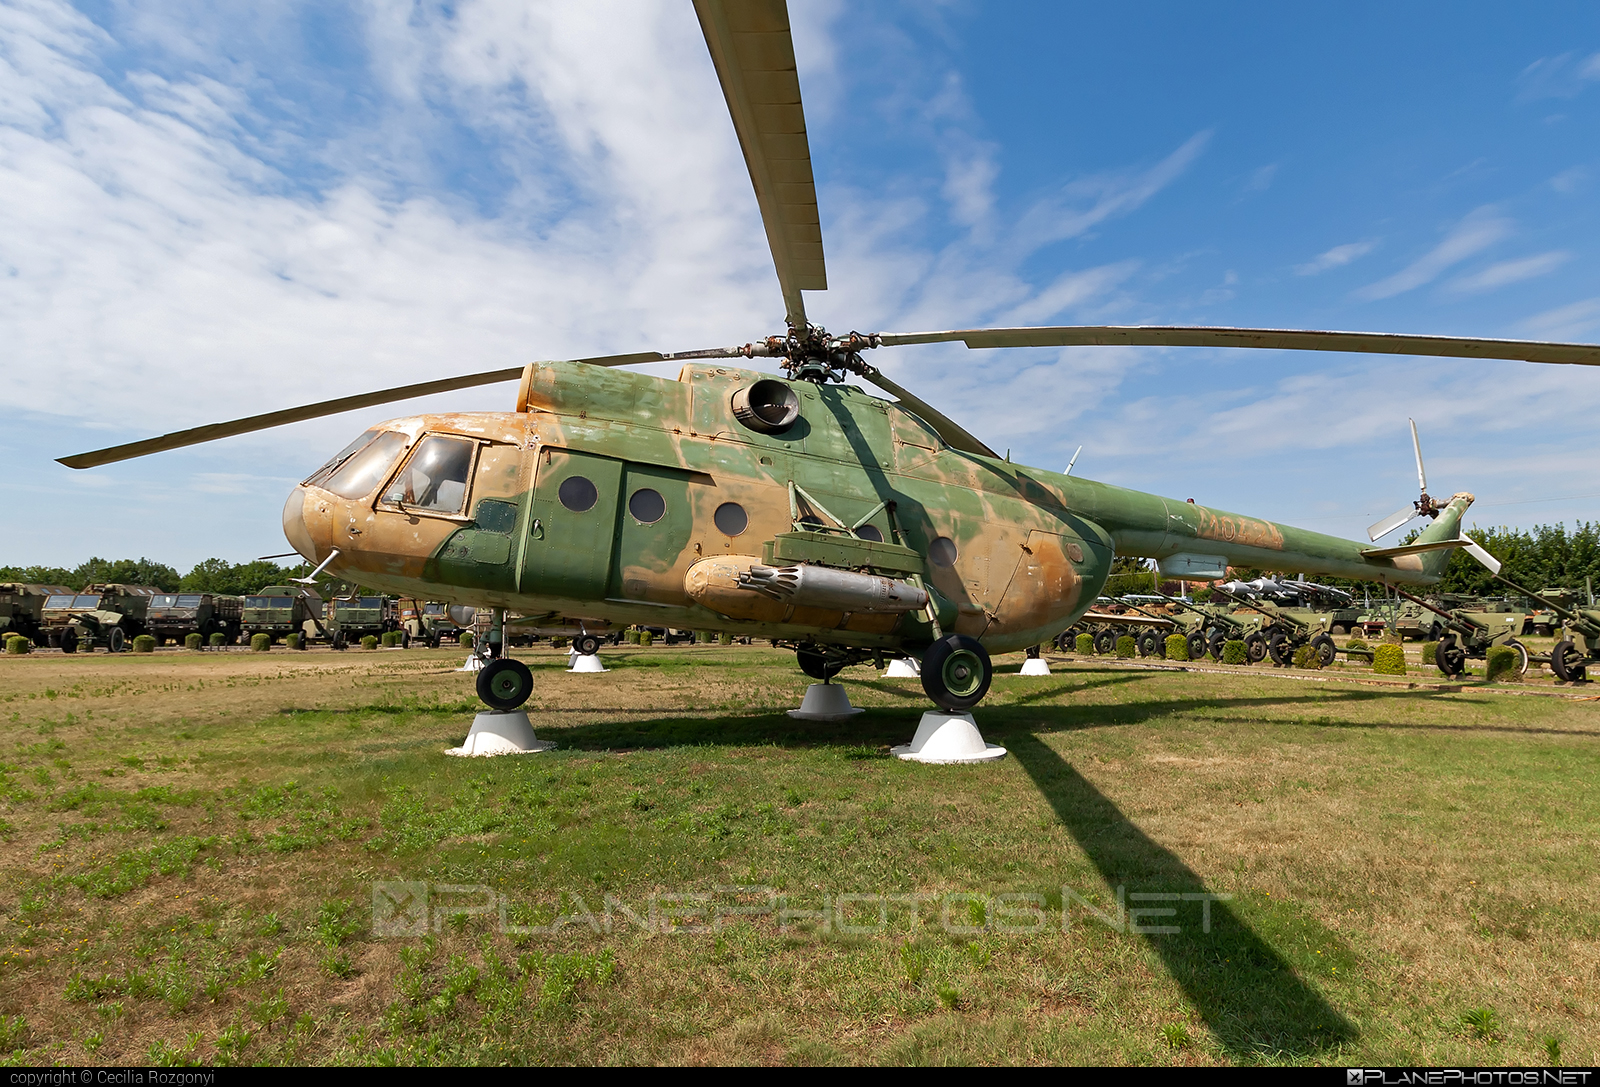 Mil Mi-8T - 10424 operated by Magyar Légierő (Hungarian Air Force) #hungarianairforce #magyarlegiero #mil #milhelicopters